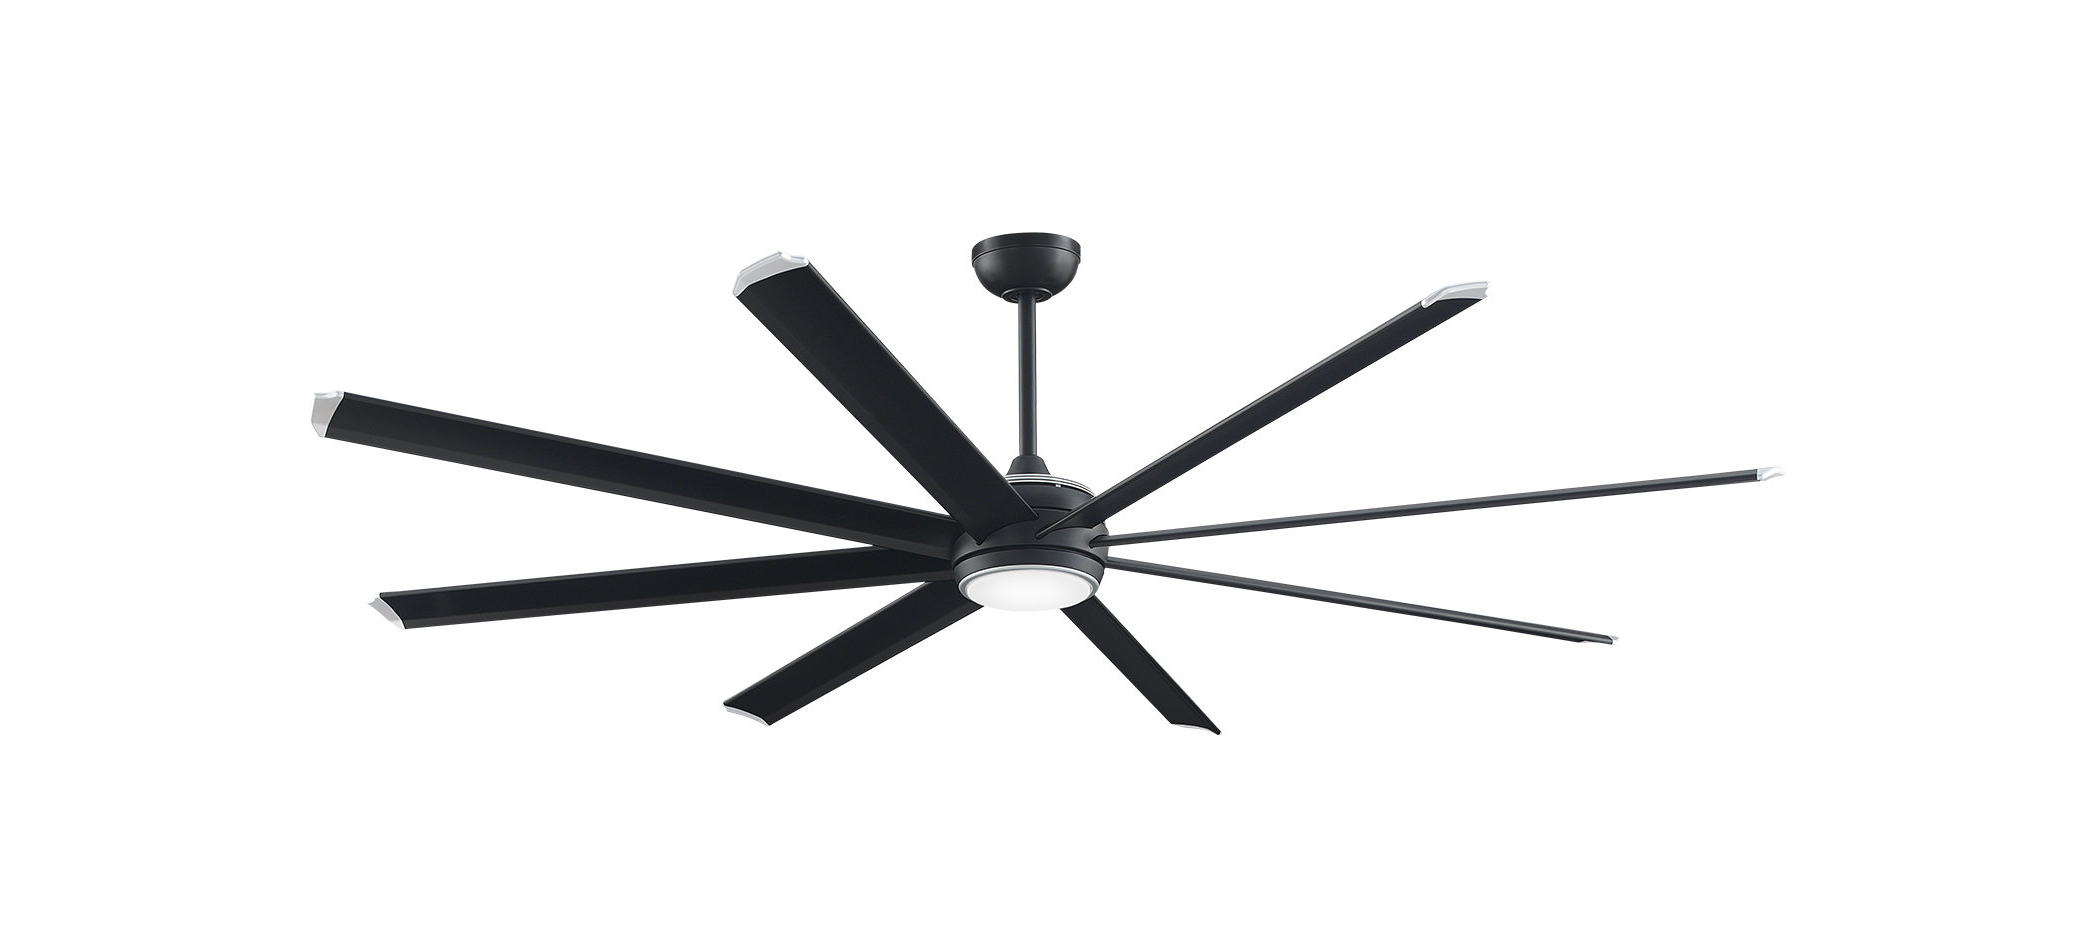 Well Liked Bankston 8 Blade Led Ceiling Fans Regarding Stellar Outdoor Led Smart Ceiling Fan Motor With Remote, Light Kit Included (View 6 of 20)